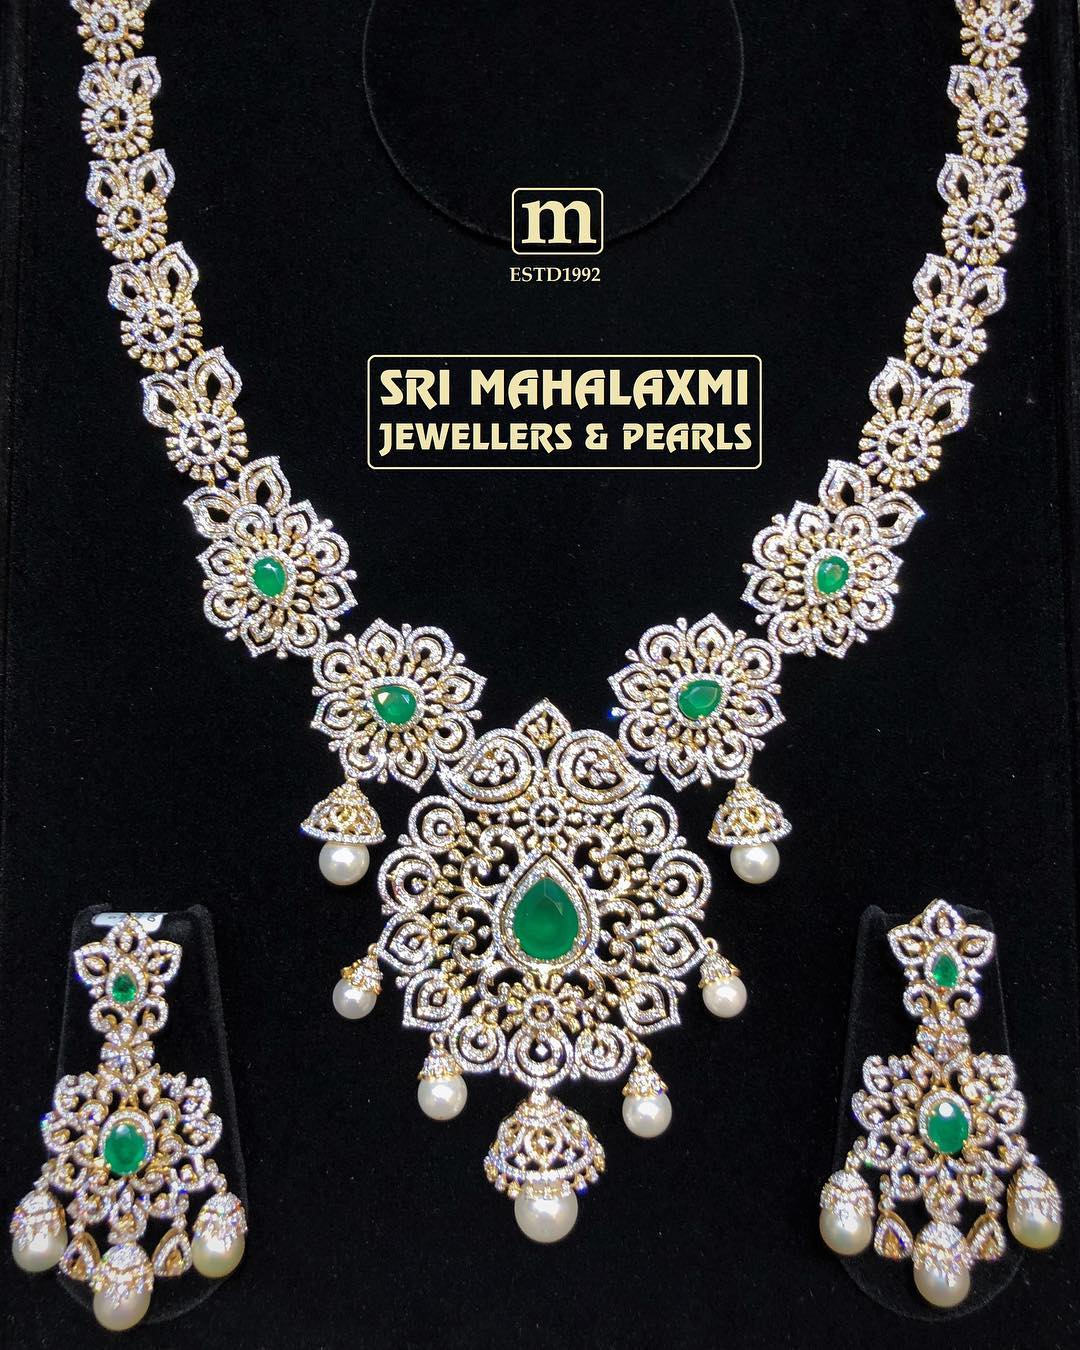 south-indian-diamond-jewellery-designs-2019 (7)